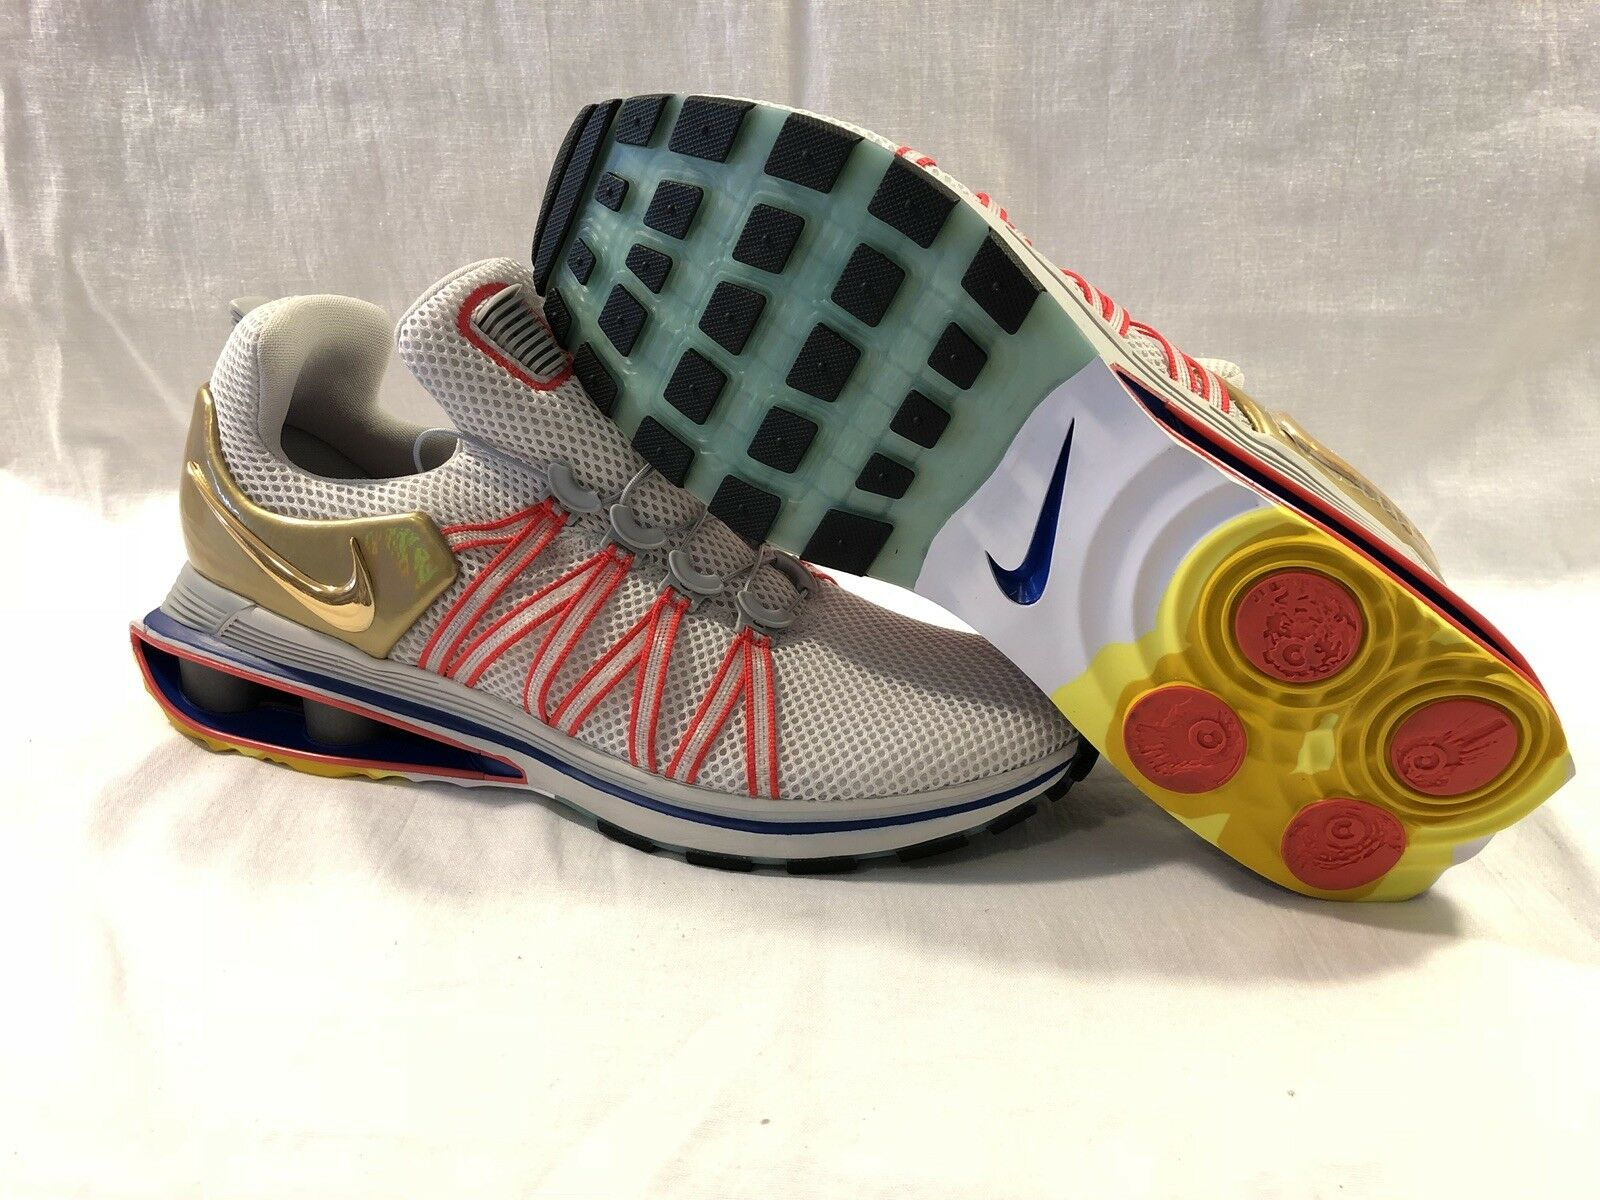 competitive price 5edcf c133e Nike Shox Gravity 2018 Sz 10 10 10 Red White bluee Metallic gold AQ8553 009  d43398